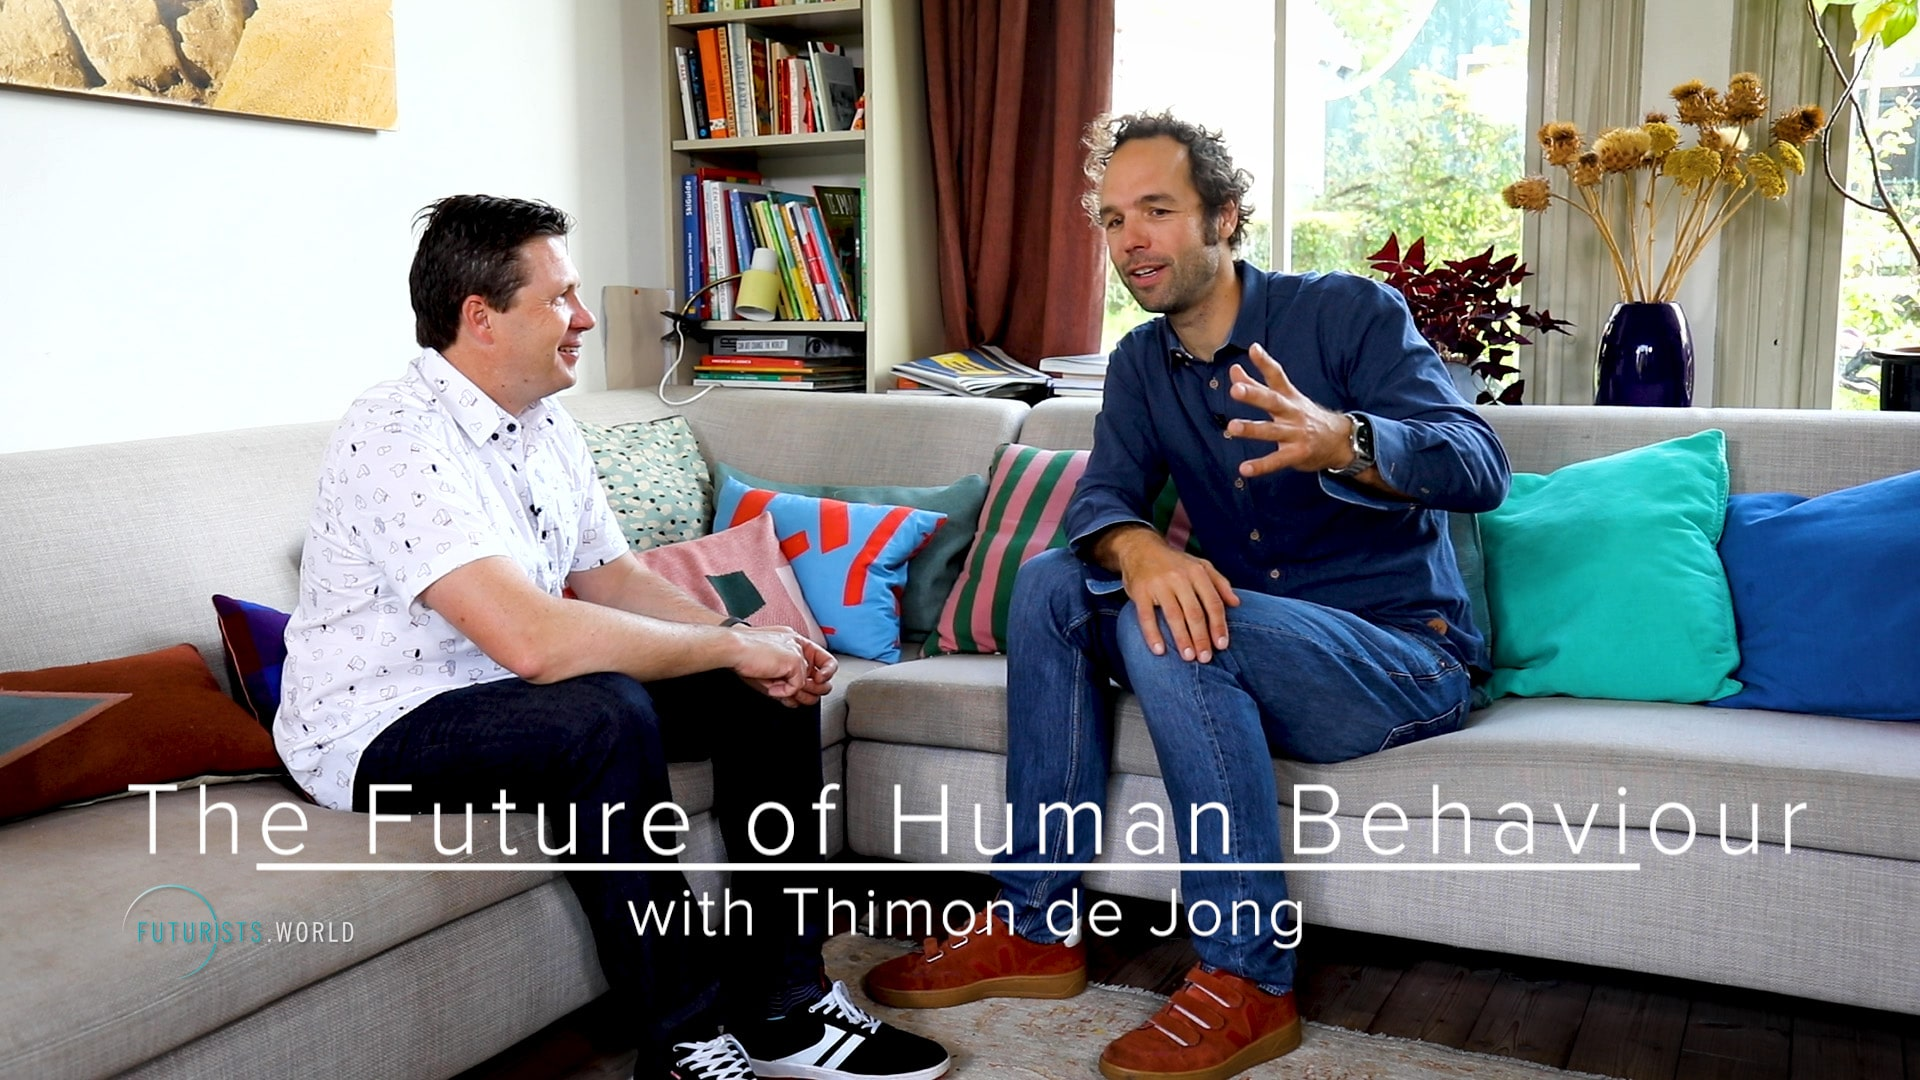 Thimon de Jong - The Future of Human Behaviour